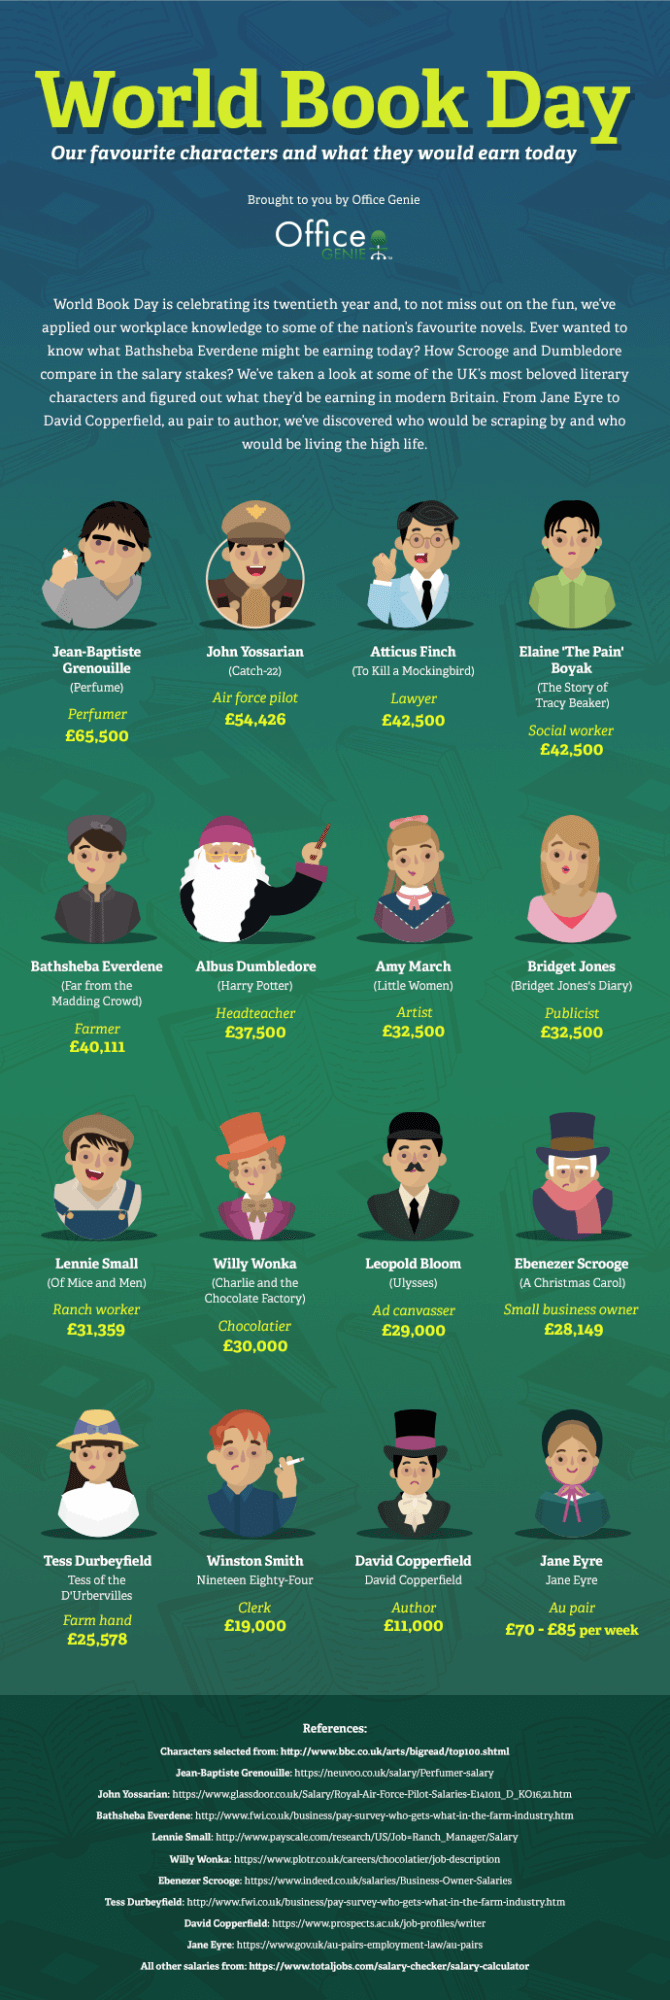 world book day what would your favourite characters earn today why not see how you compare in the salary stakes to these literary favourites